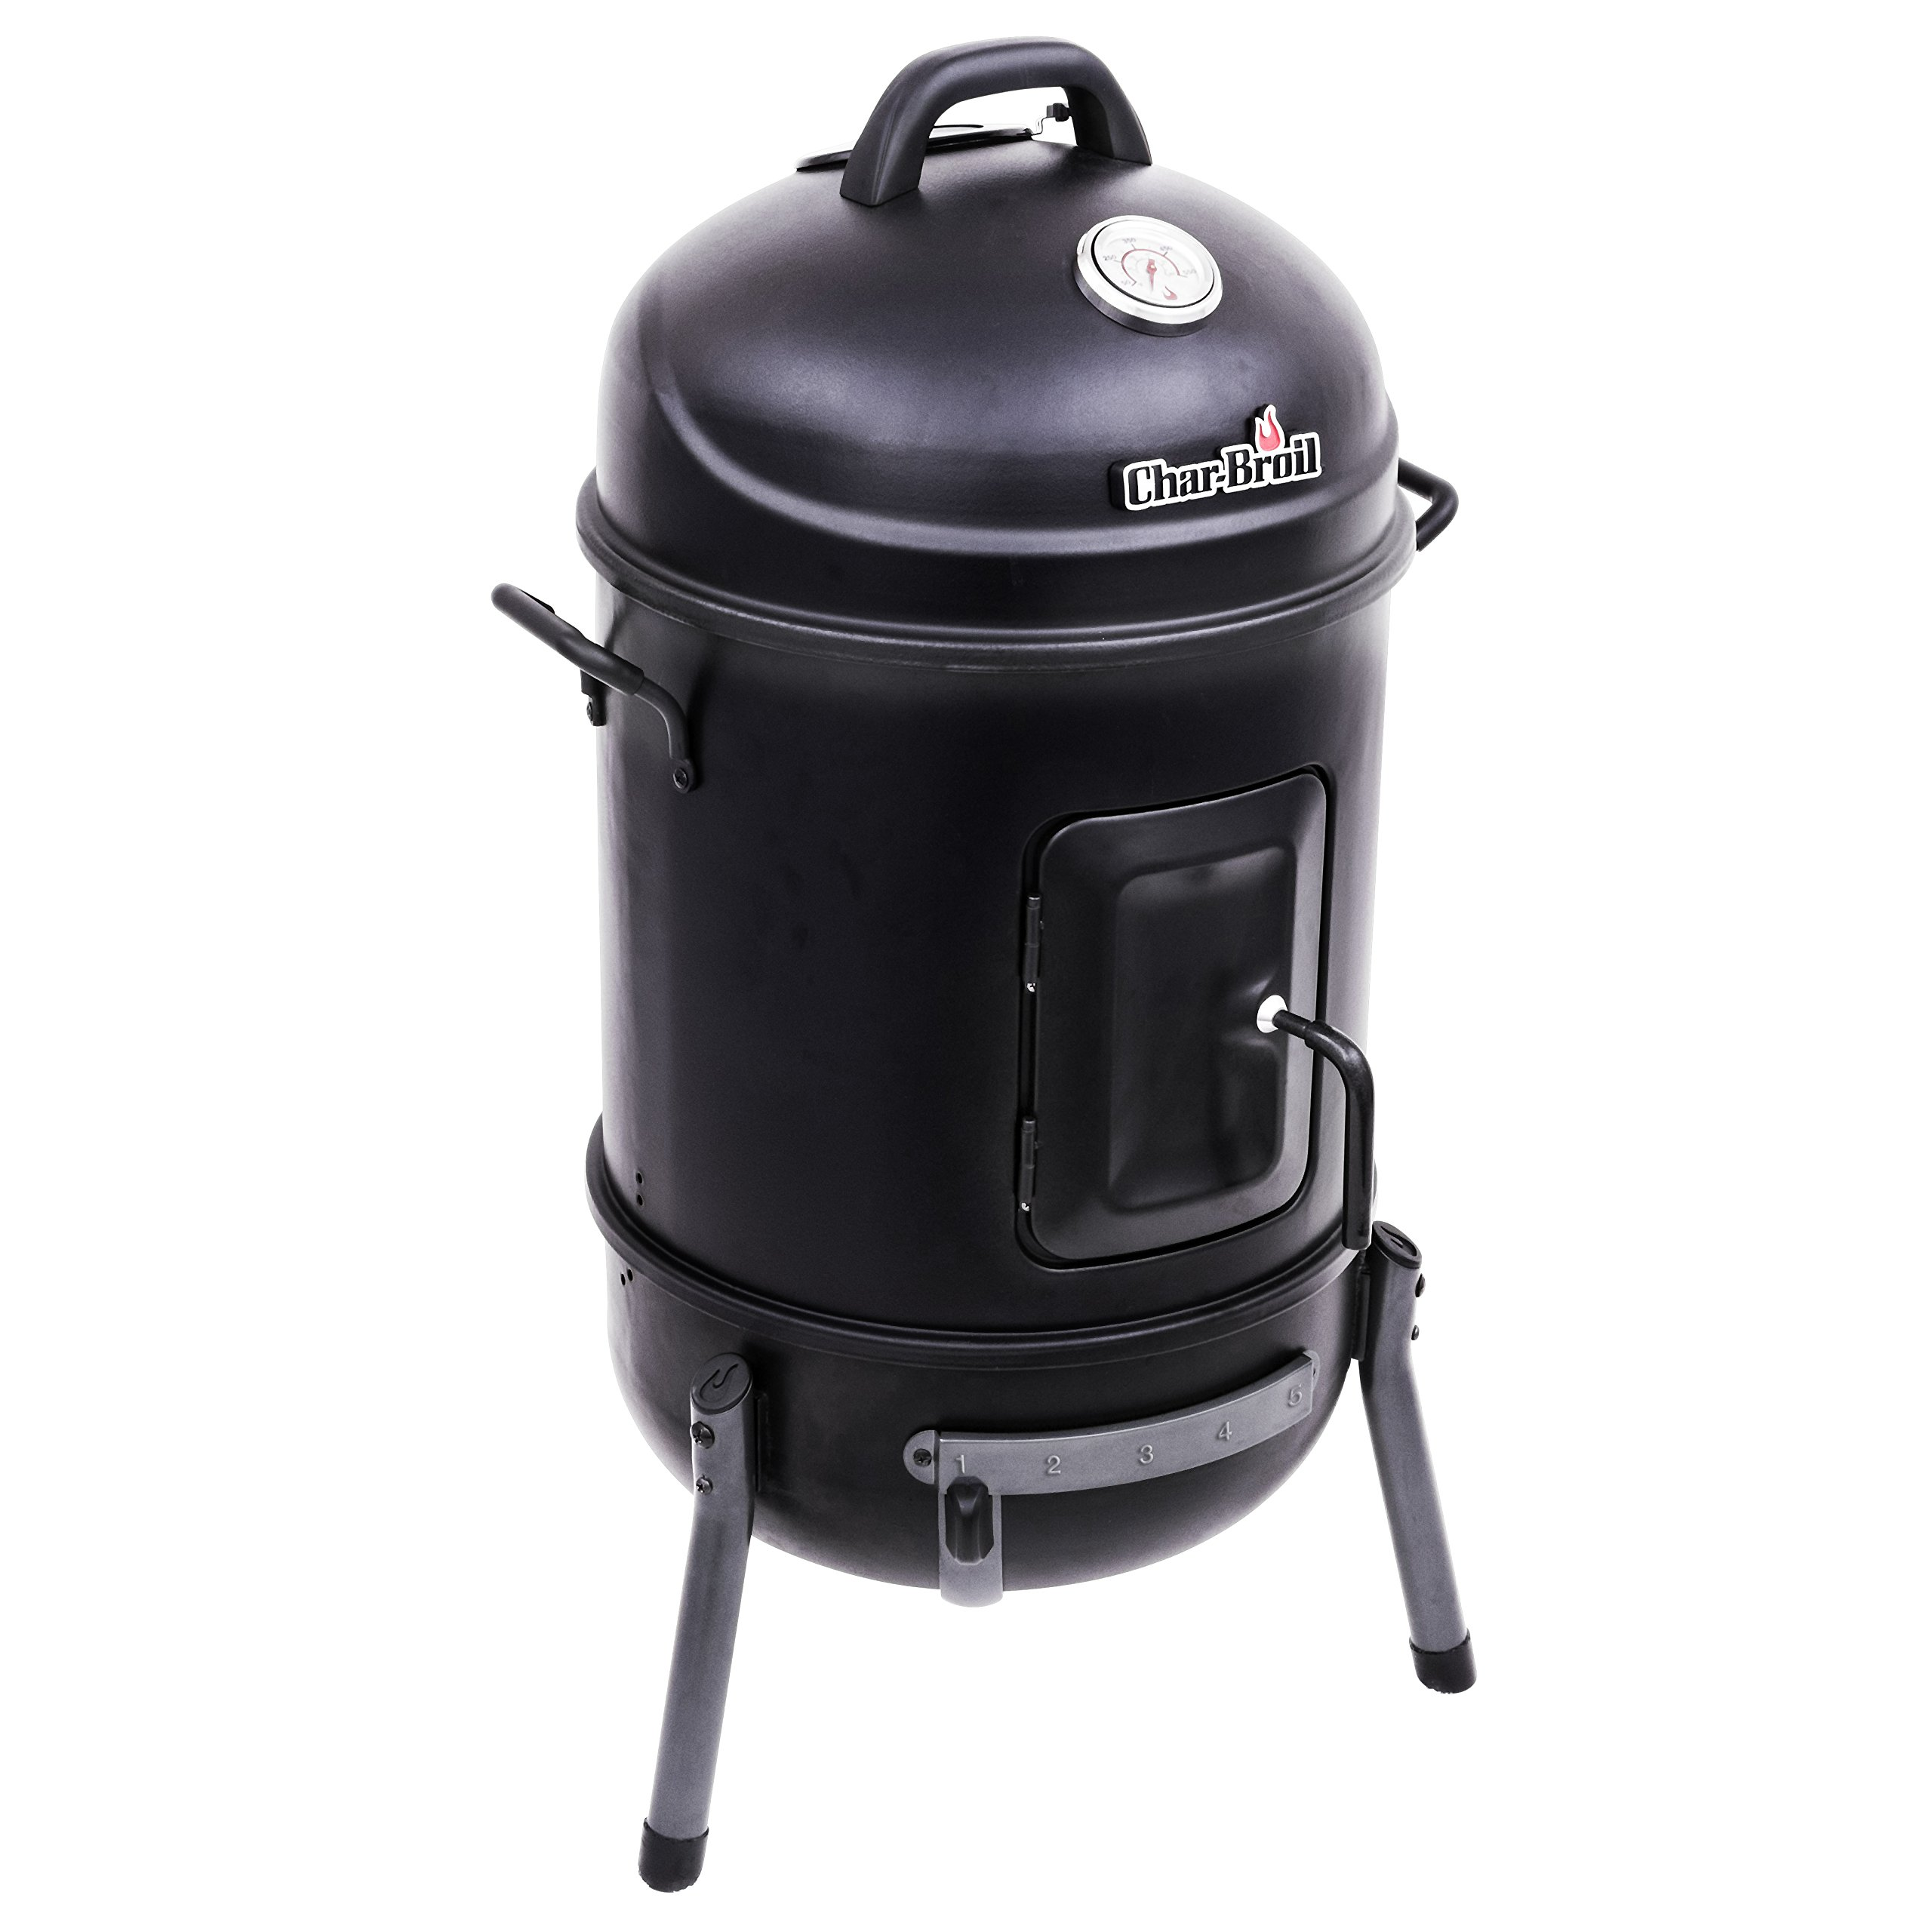 Char-Broil Bullet Charcoal Smoker, 16'' by Char-Broil